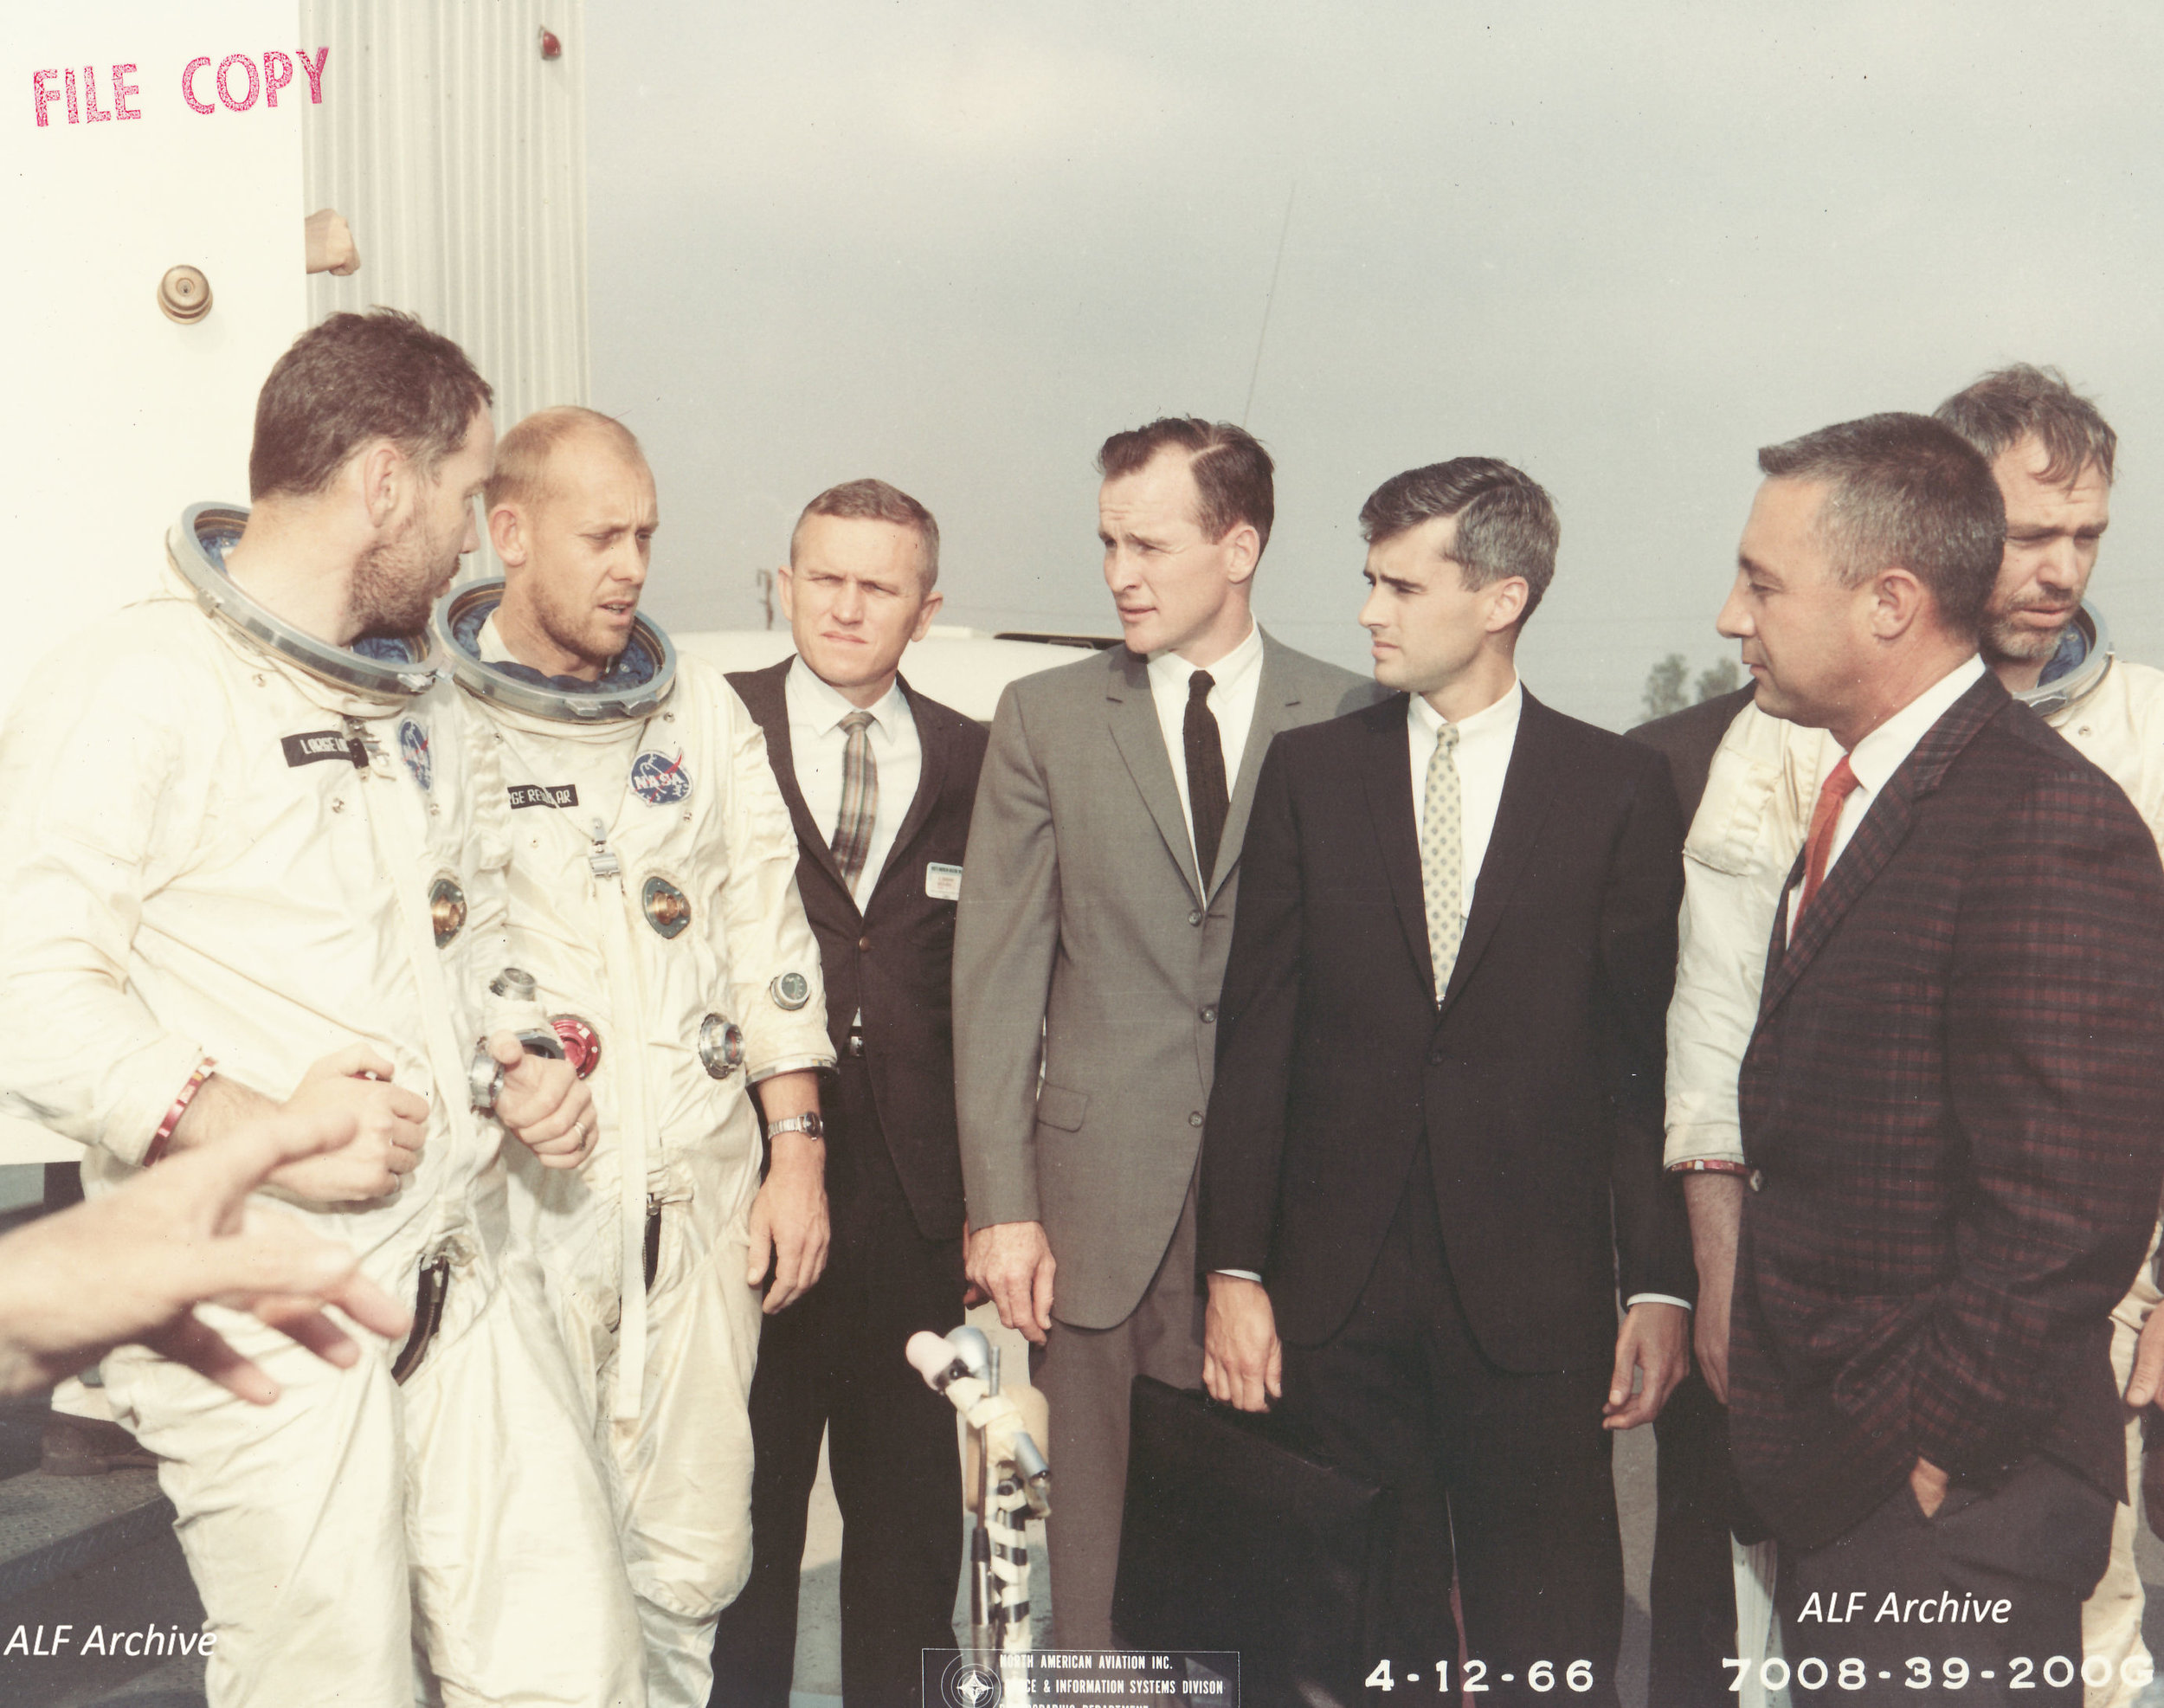 apollo 1 astronauts grissom white and chafee 4 12 66  labeled.jpg